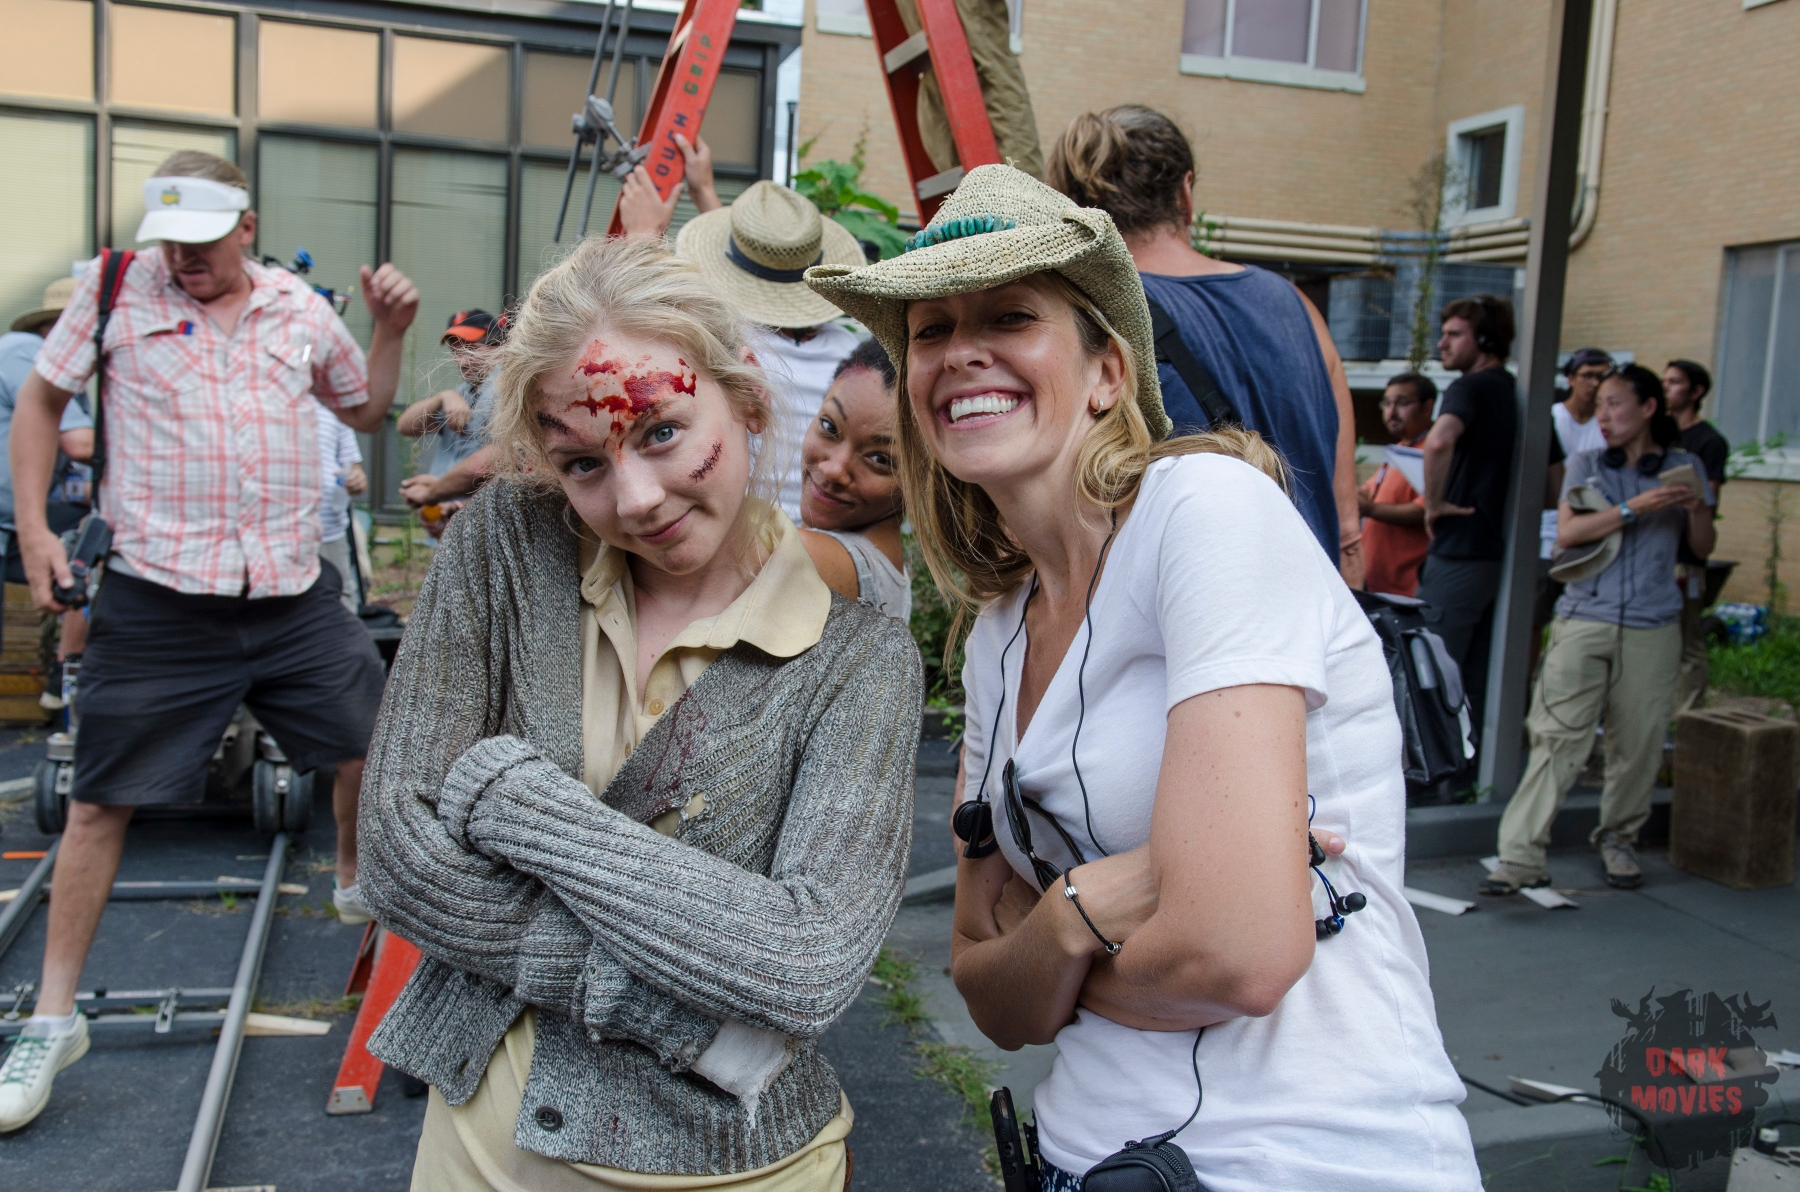 Emily Kinney, Sonequa Martin-Green and Denise Huth - The Walking Dead _ Season 5, Episode 8 _ BTS - Photo Credit: Gene Page/AMC